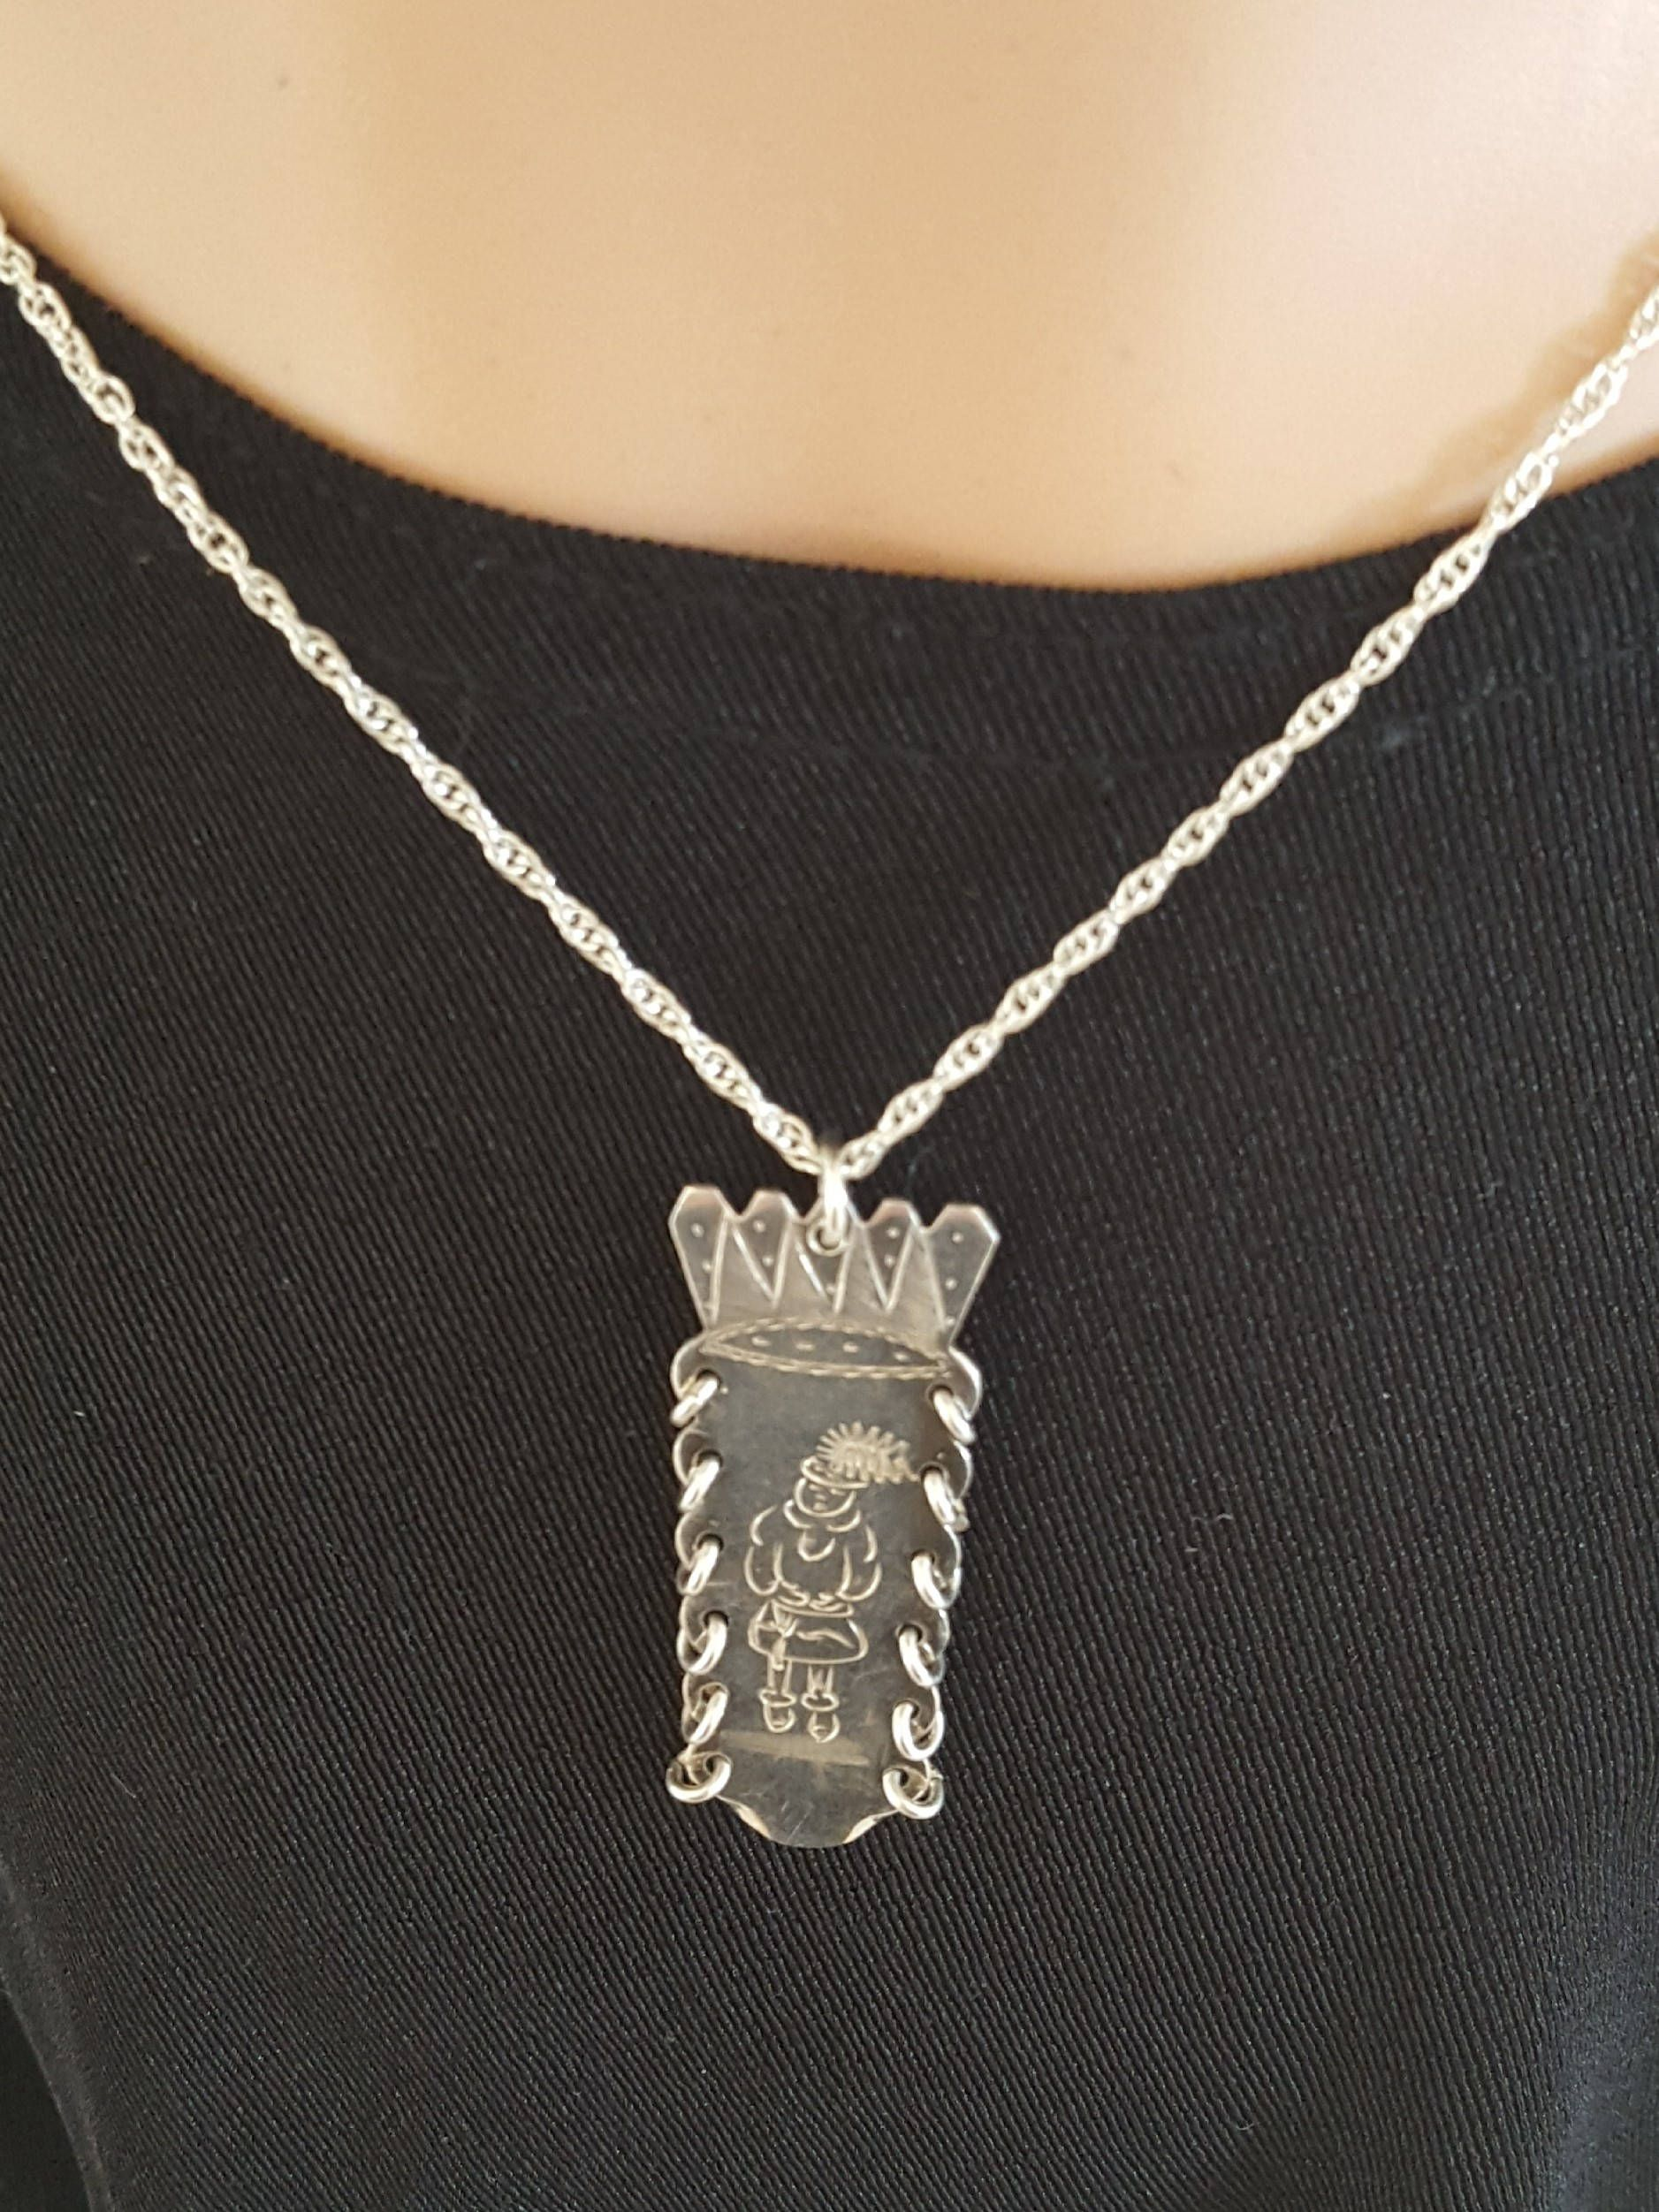 Jewelry Necklace Women's Sterling Silver Necklace Sterling